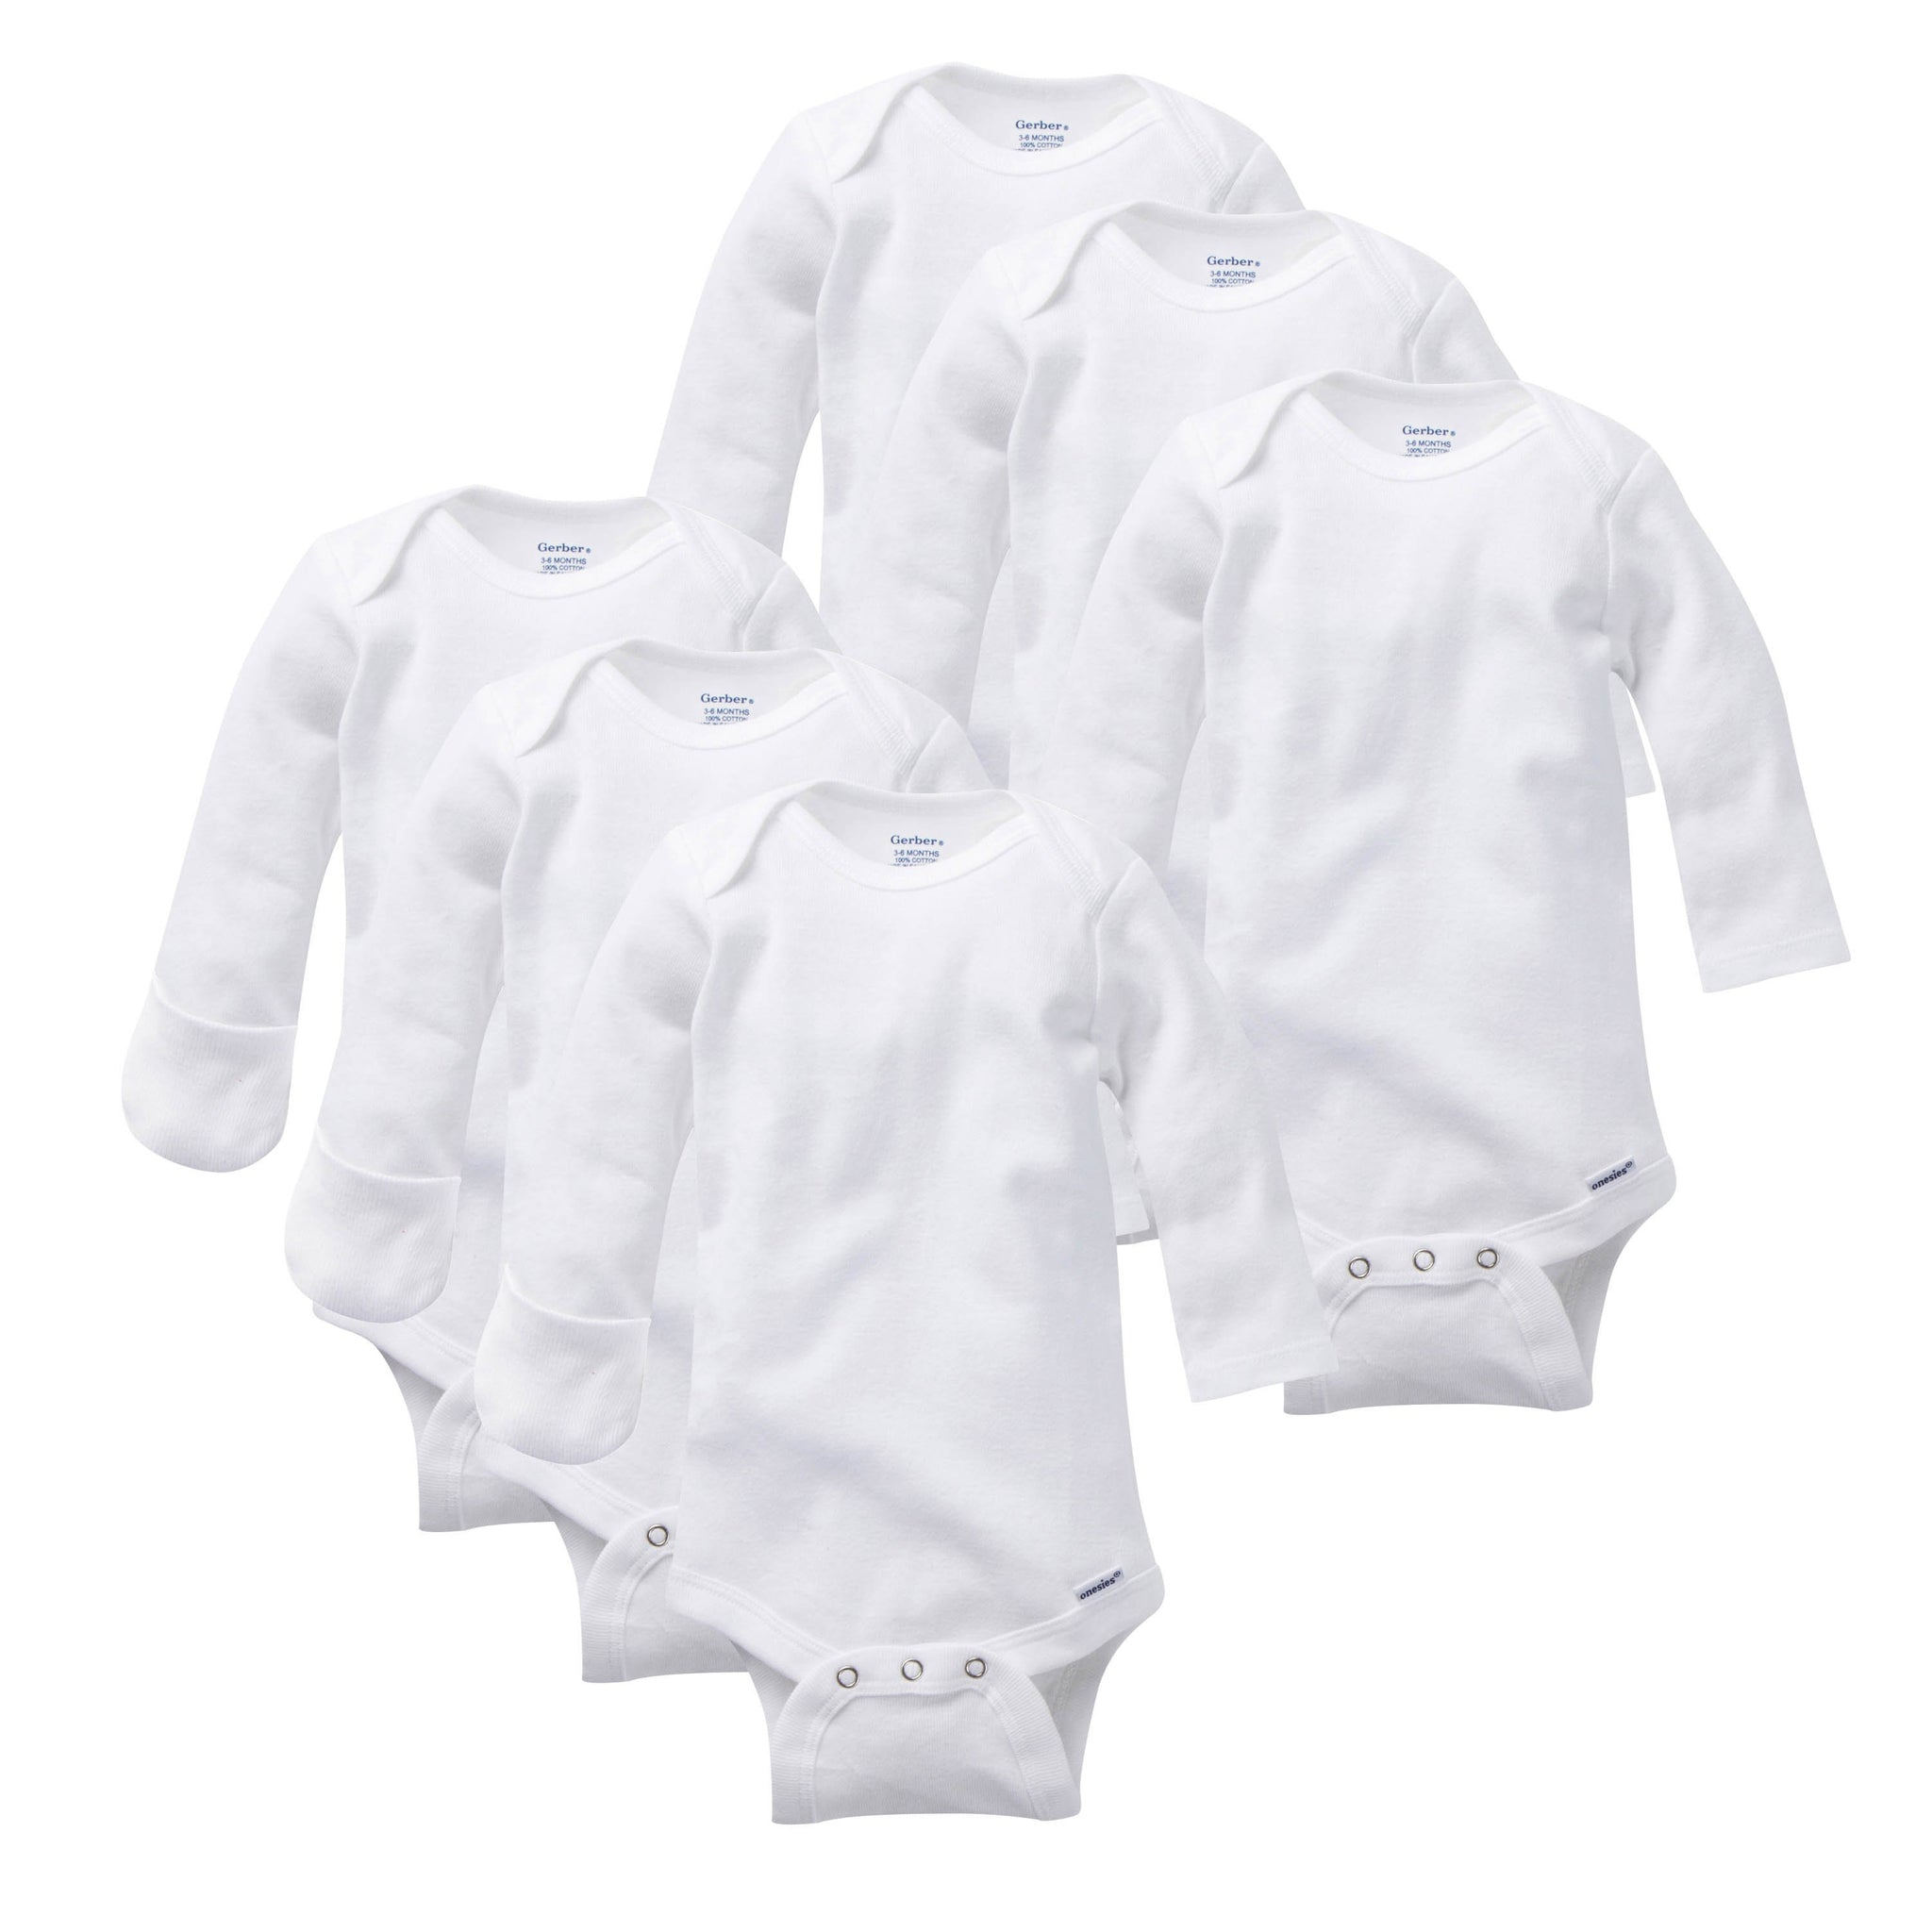 6-Pack White Long-Sleeve Onesies® Bodysuits with Mitten-Cuffs-Gerber Childrenswear Wholesale